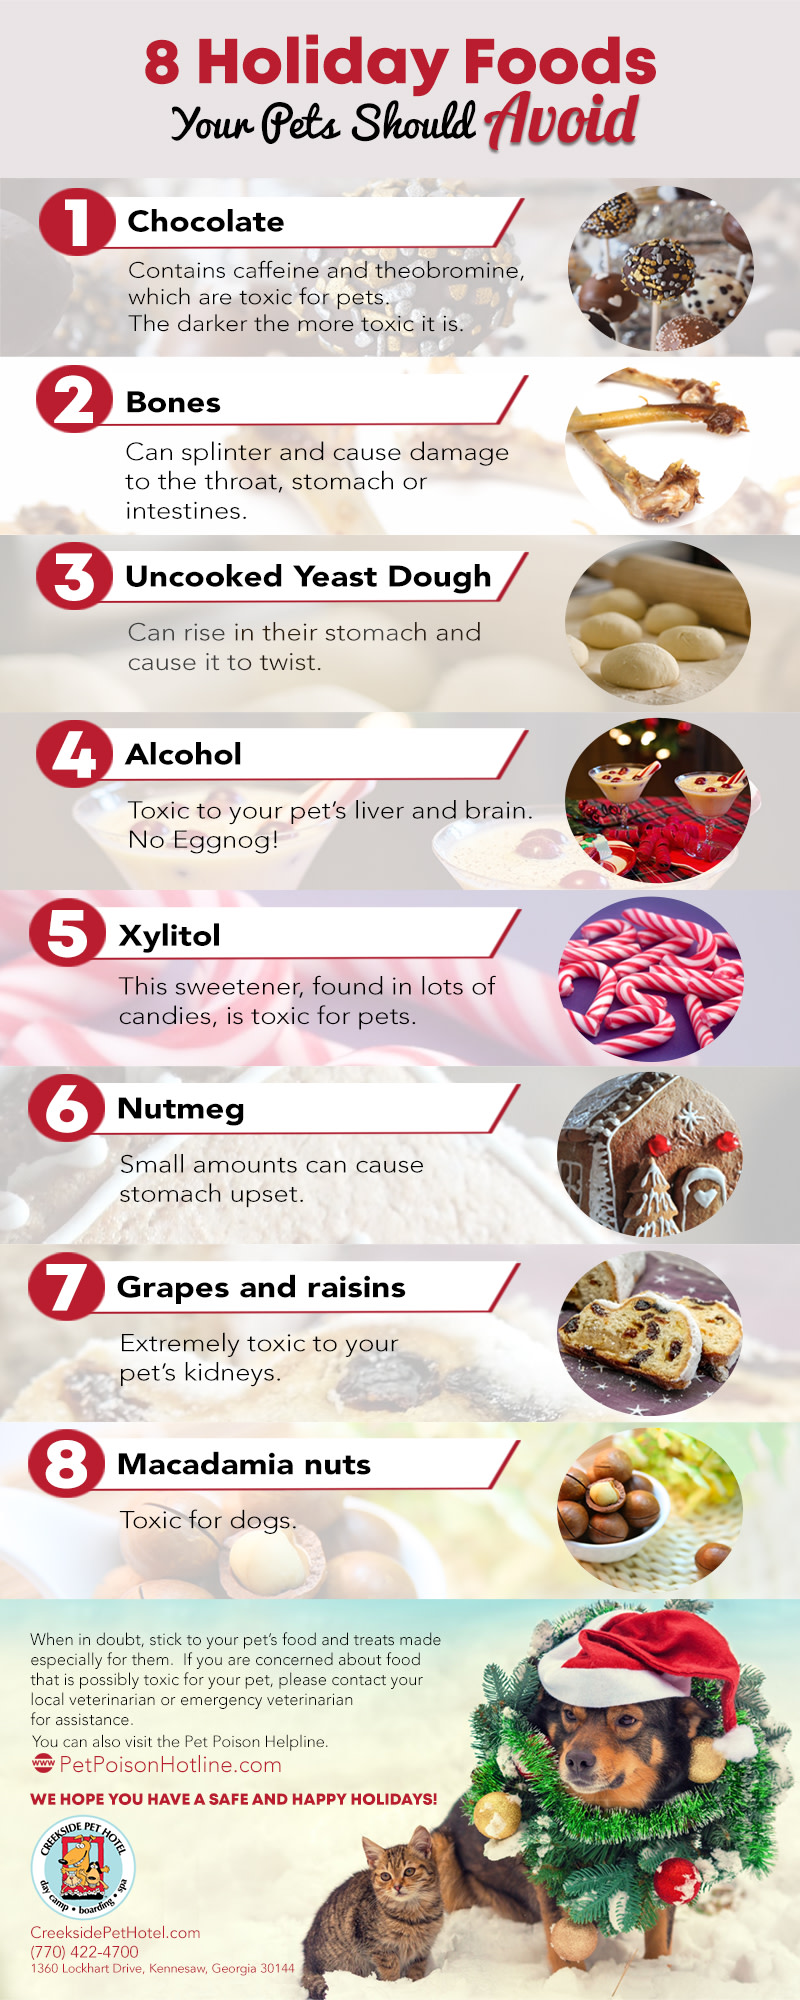 8 Holiday Foods Your Pets Should Avoid Infographic